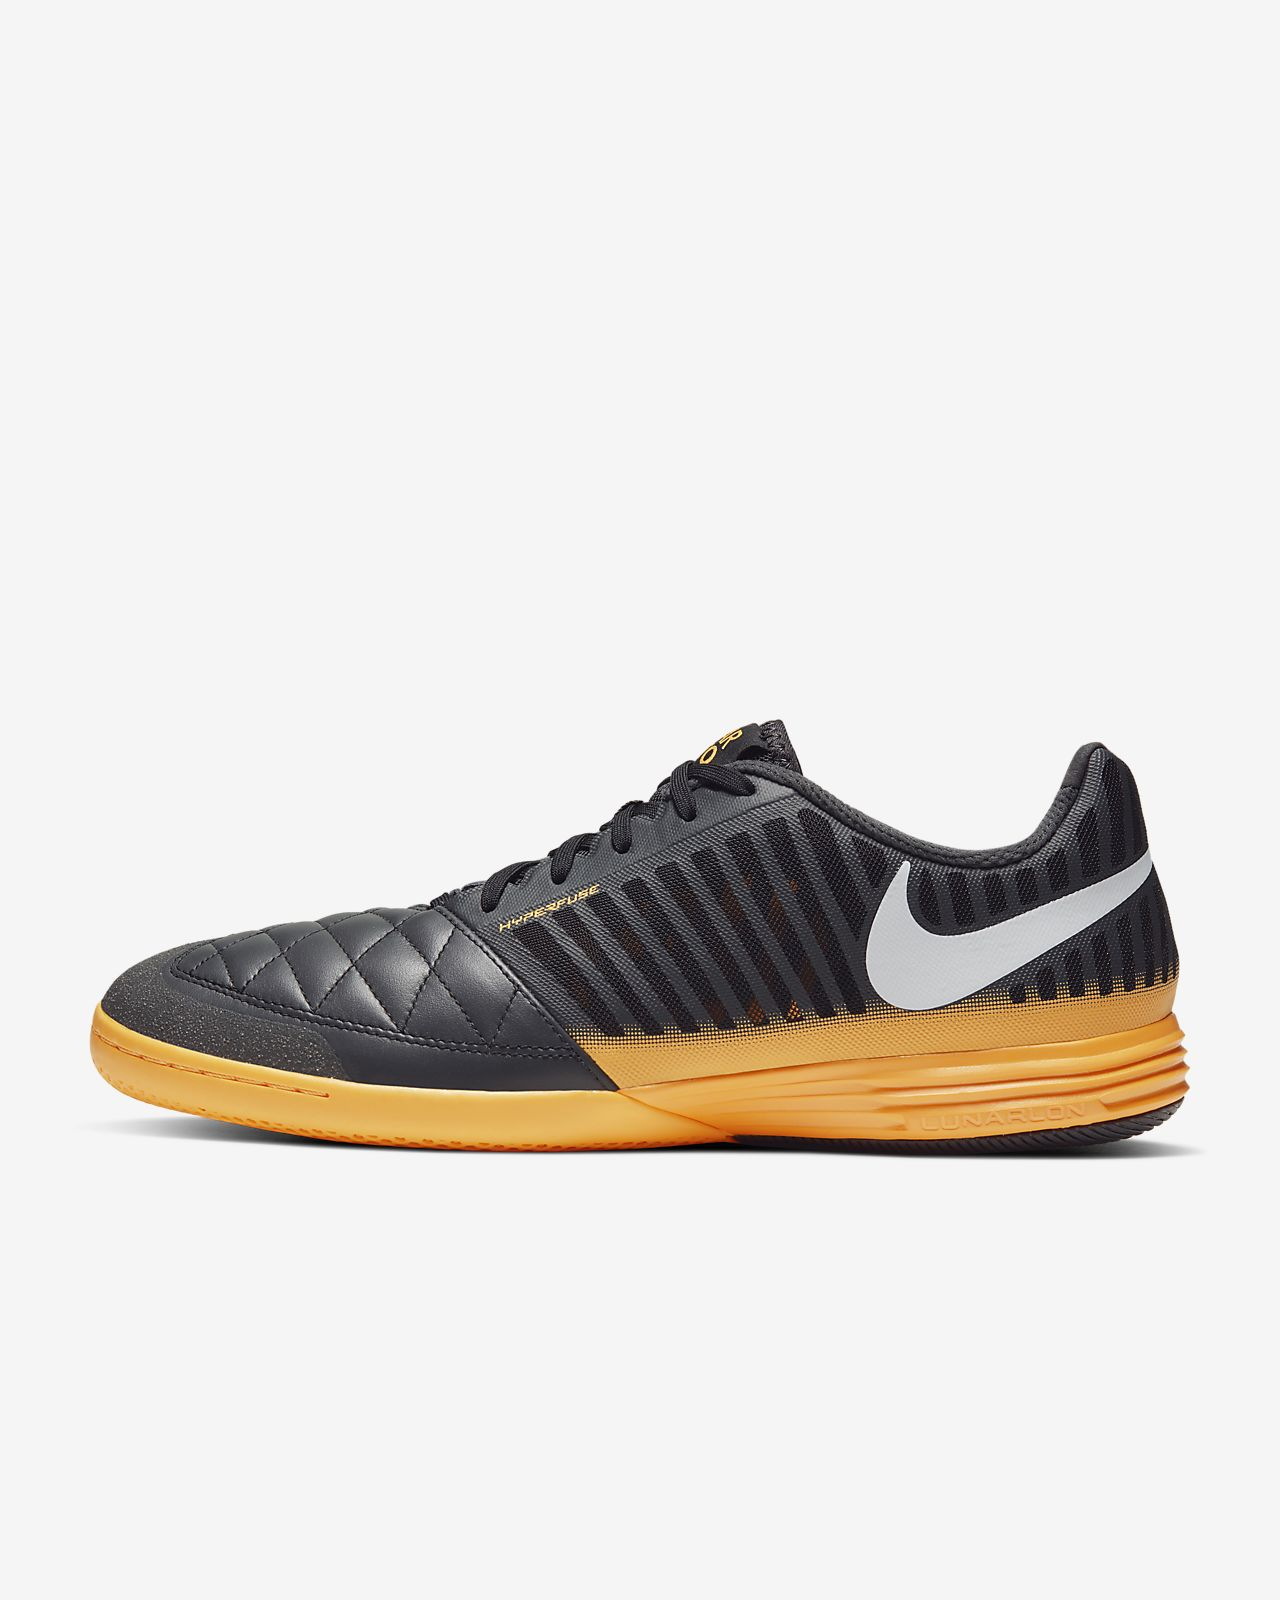 Nike LegendX 7 Club IndoorCourt Mens Soccer Shoe